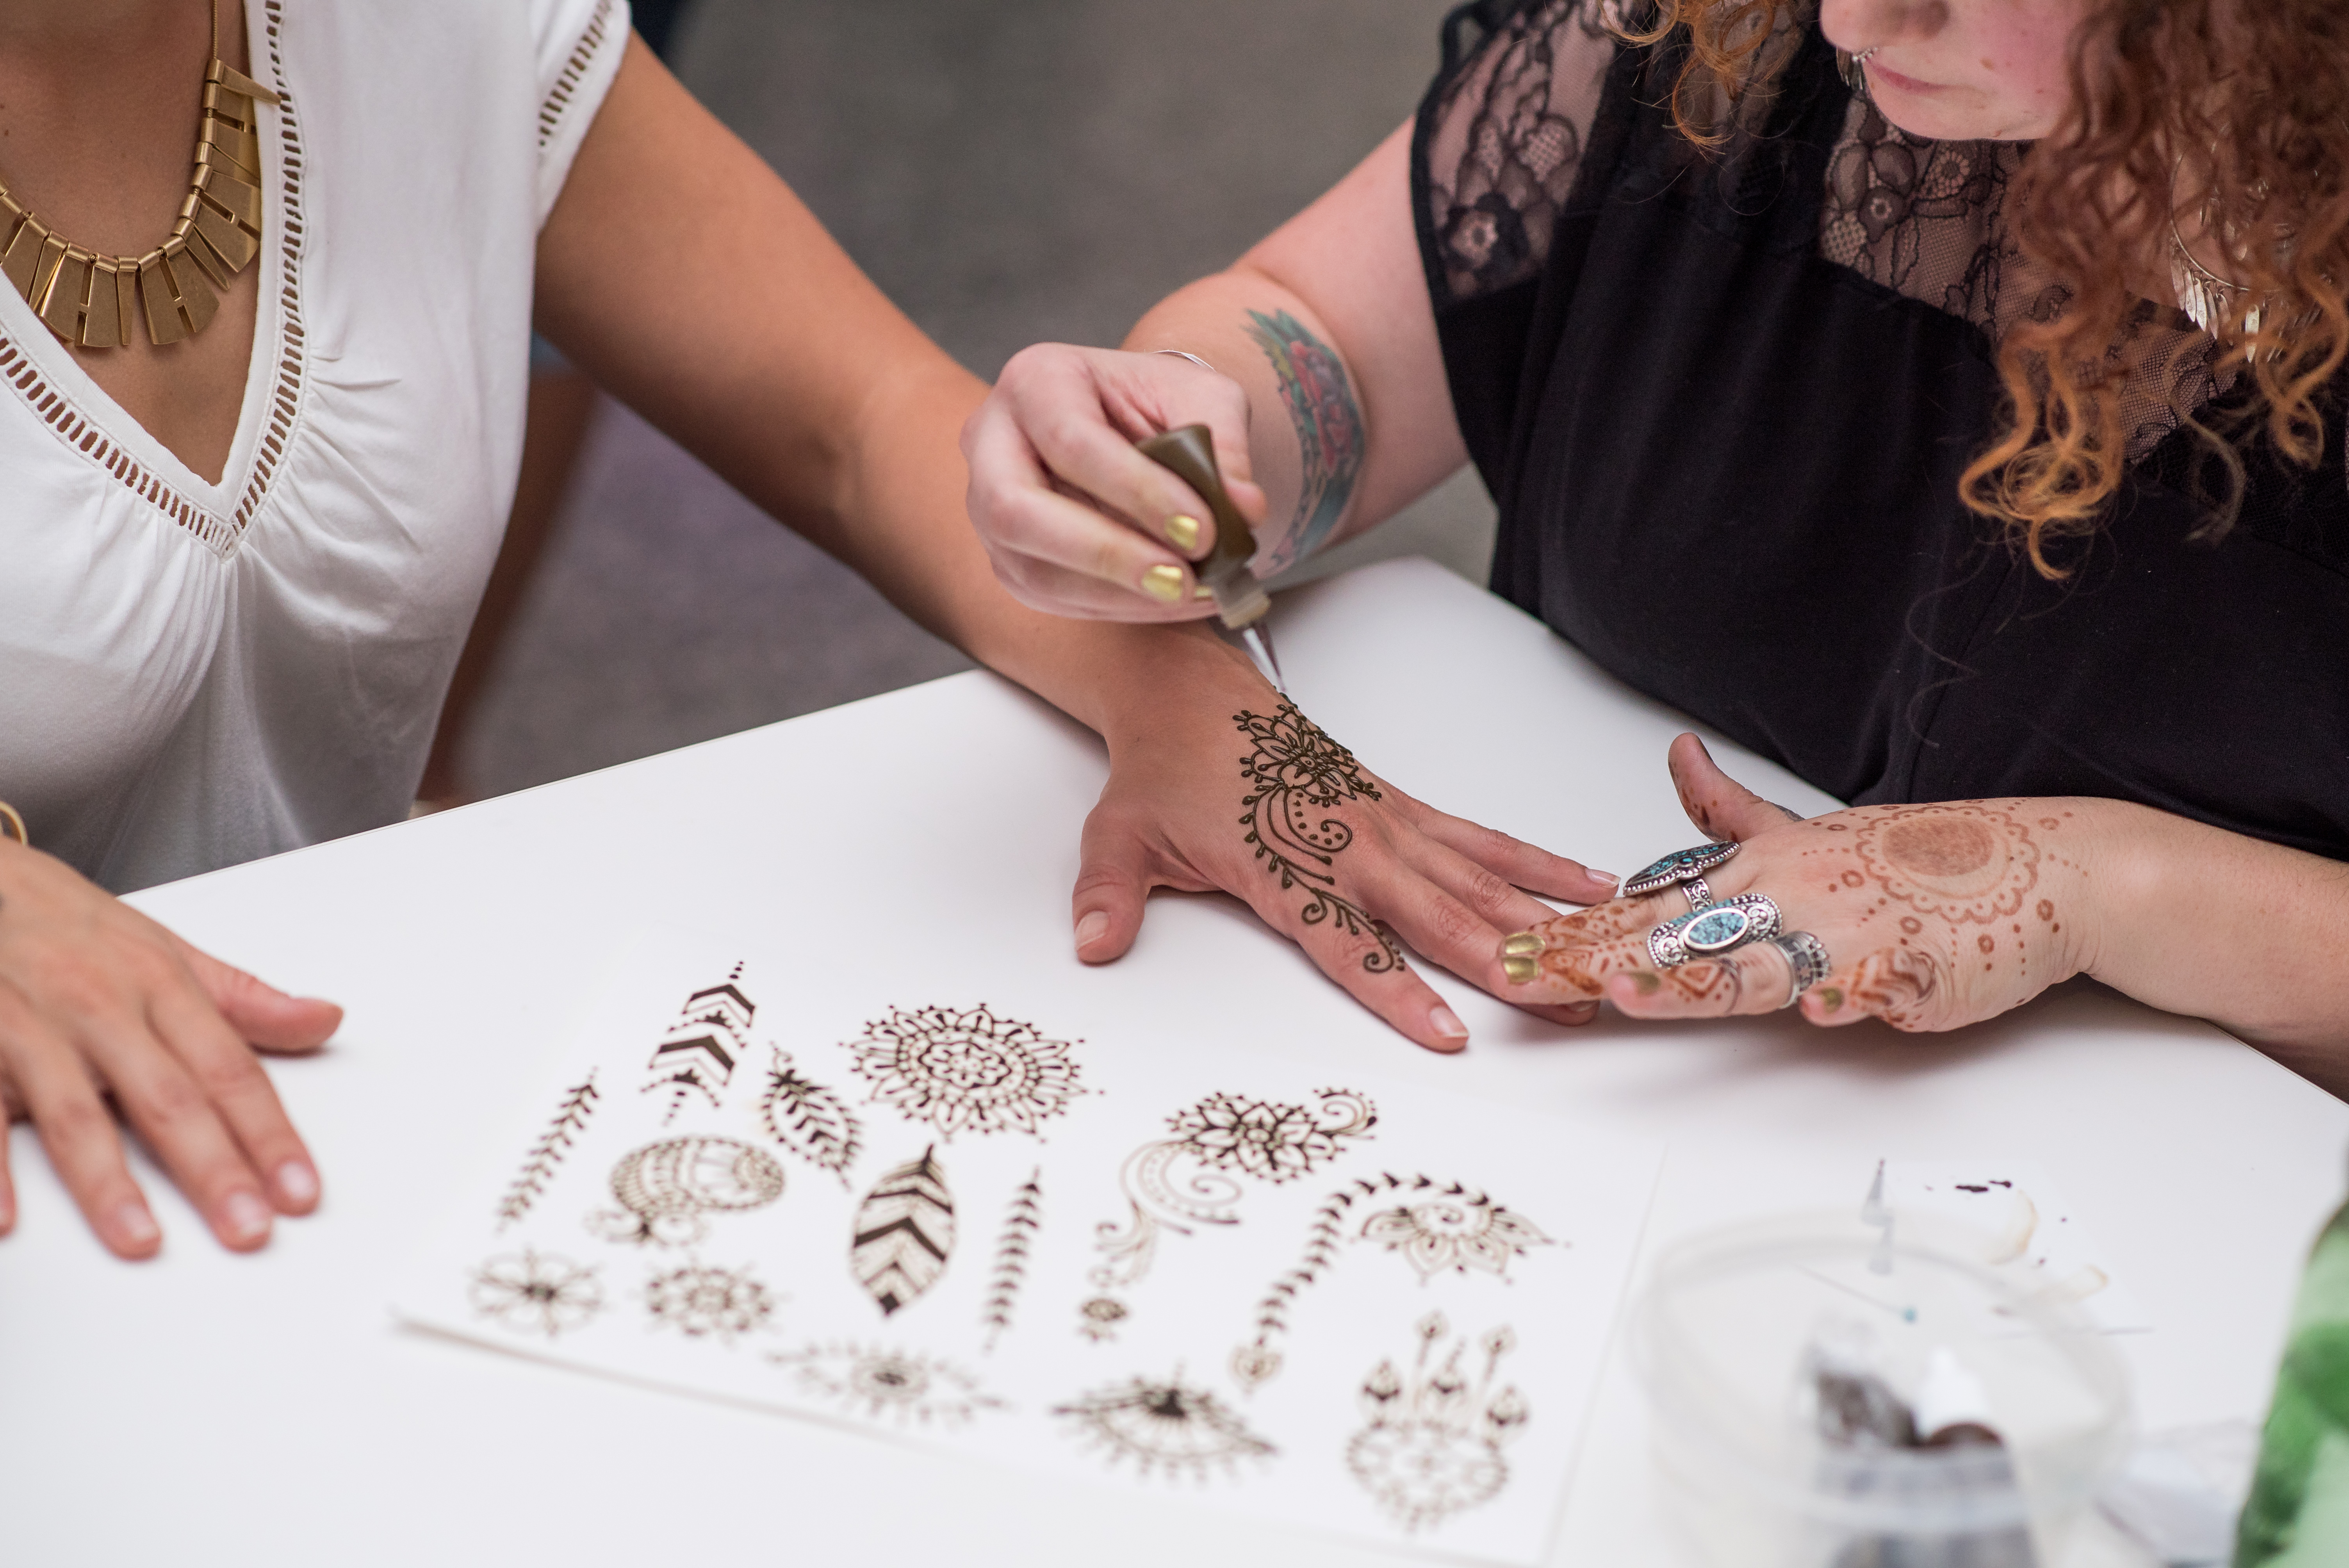 Anna Laura Hopper of the Gypsy Leaf will be doing Henna tattoos at Art On The Rocks.